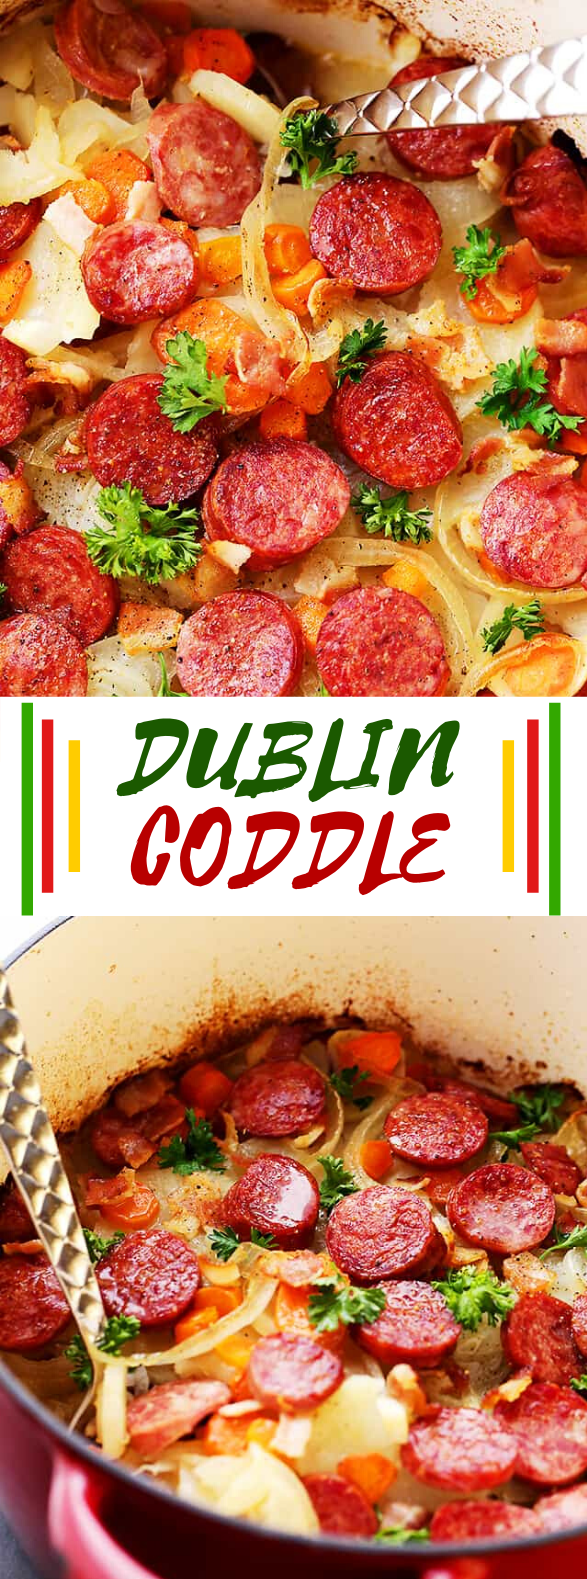 Dublin Coddle Recipe #dinner #winterrecipes